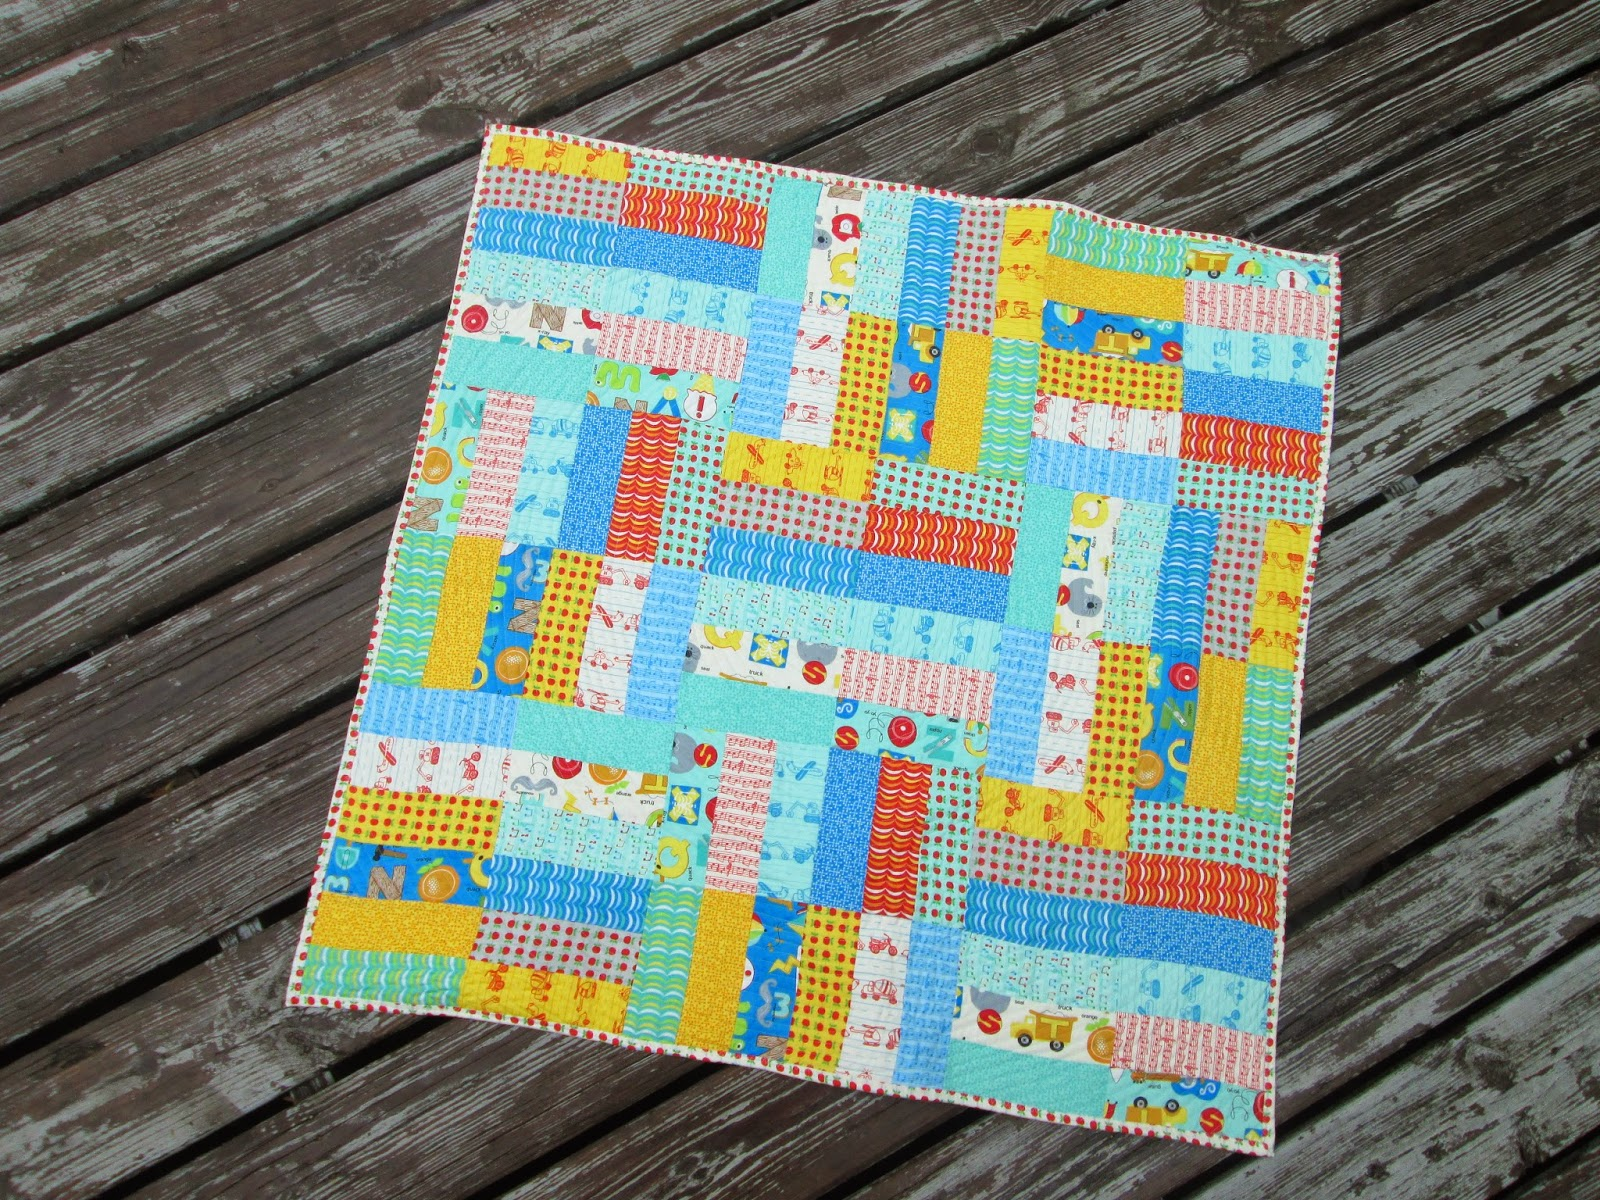 That S Sew Julie Apple Jack Quilt 2 And Spiral Quilting Tips